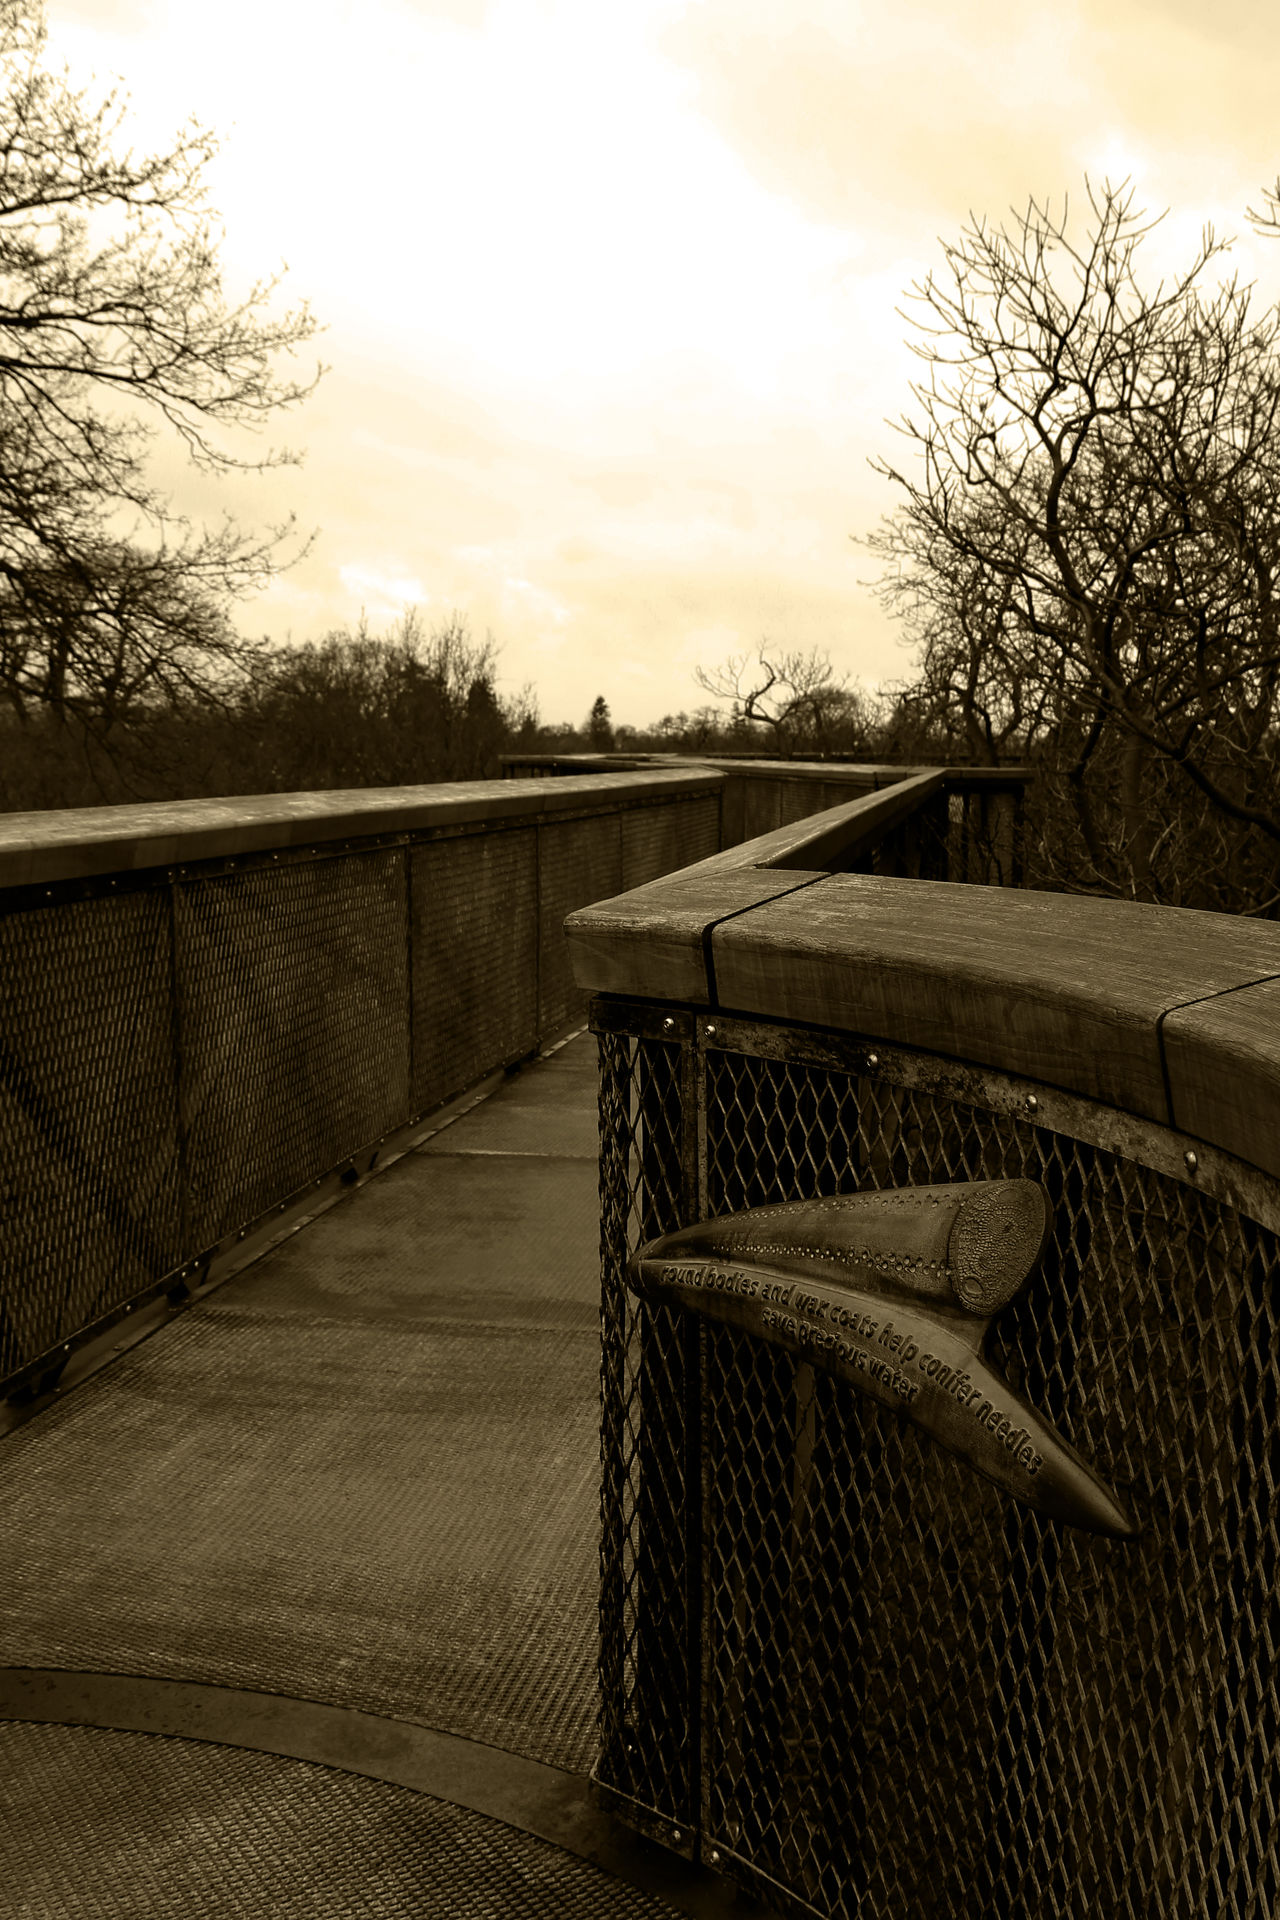 Bridge Kew Kew Bridge Kew Gardens Kew Gardens, London Kewgardens Steps And Staircase The Way Forward Sepia Photography In The Trees High Above Wooden Bridge Ahead